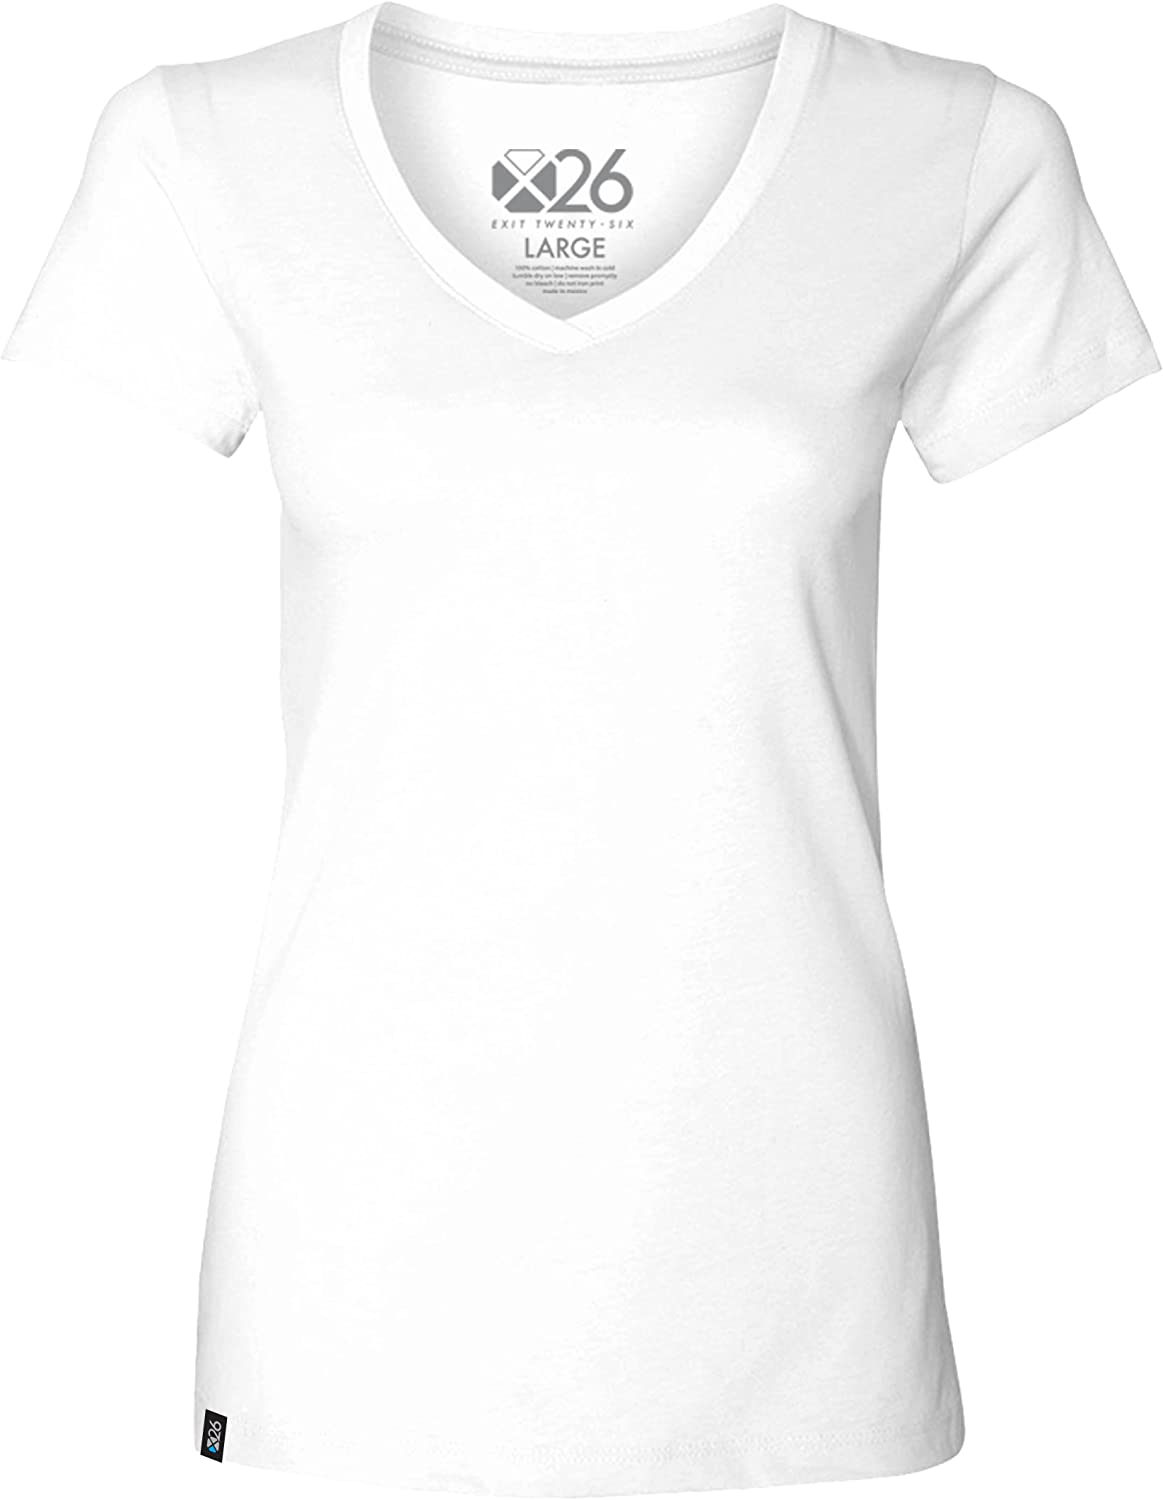 EXIT 26 Women's Premium Ultra Soft Sueded Jersey V Neck Plain and Heather TShirts